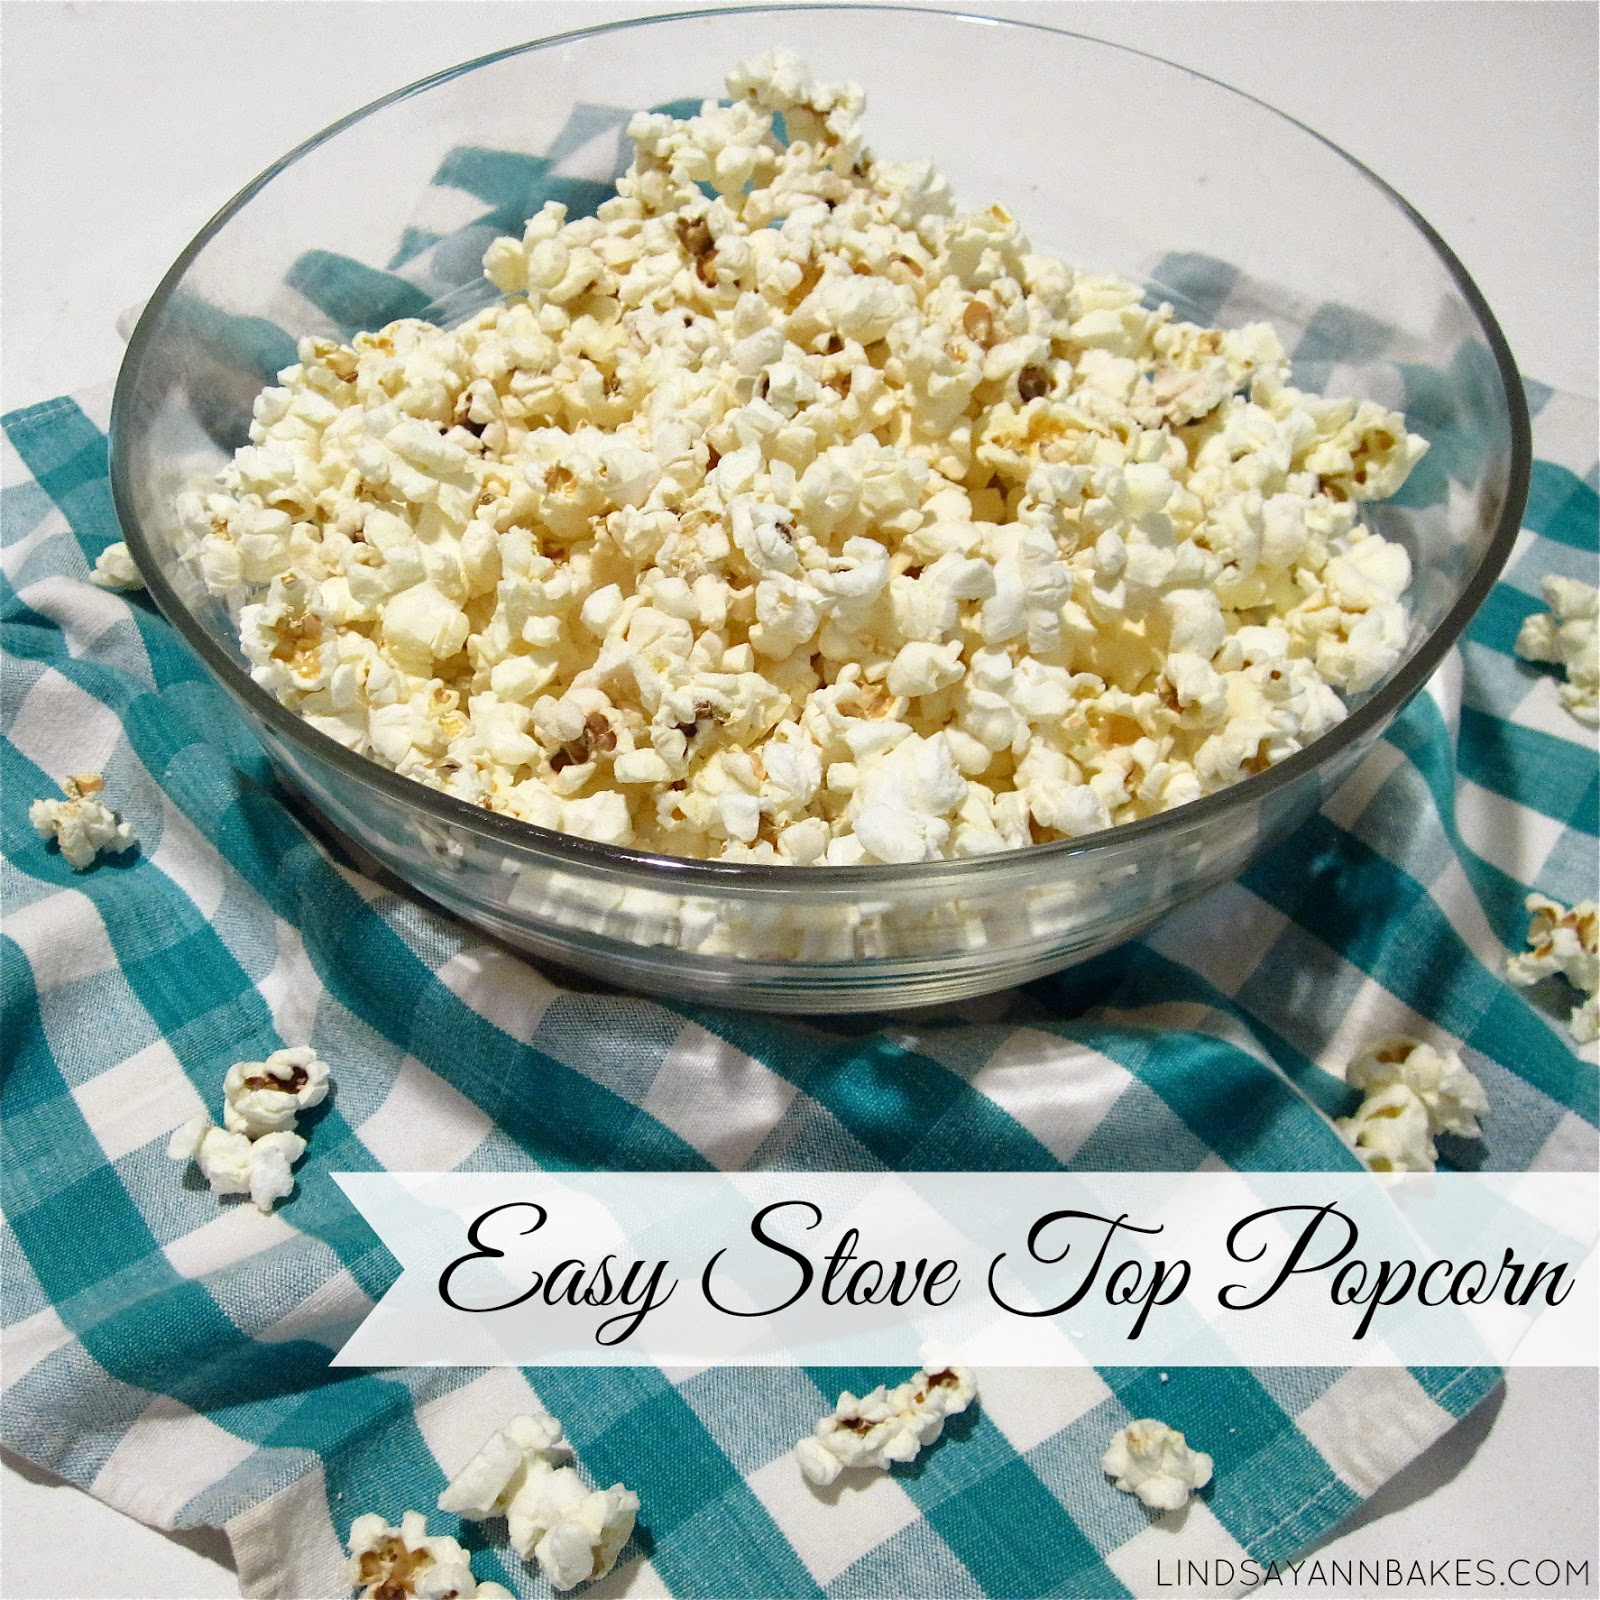 Diy Easy Homemade Stove Top Popcorn With A Variety Of Seasoning Ideas